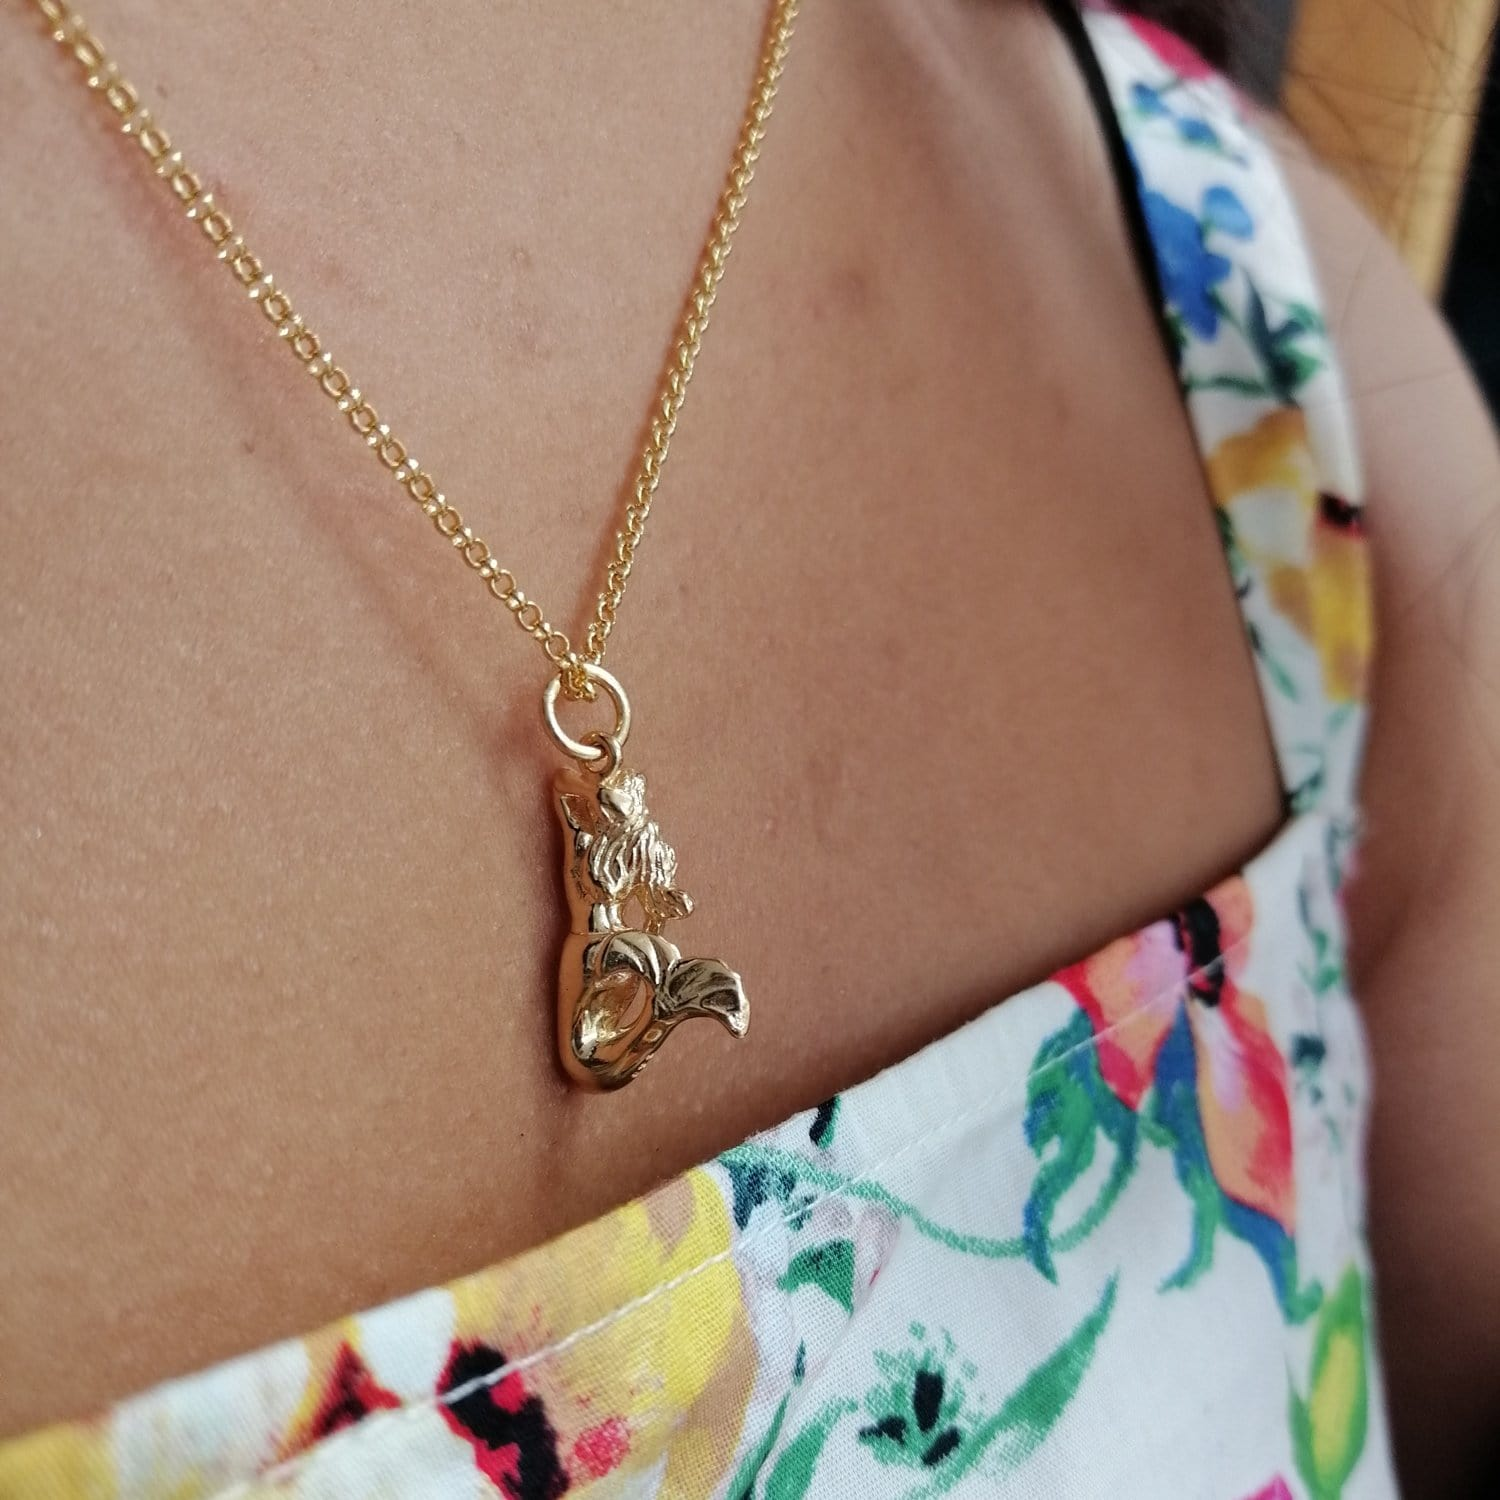 Personalised Gold Plated 3D Mermaid Necklace - Lily Charmed